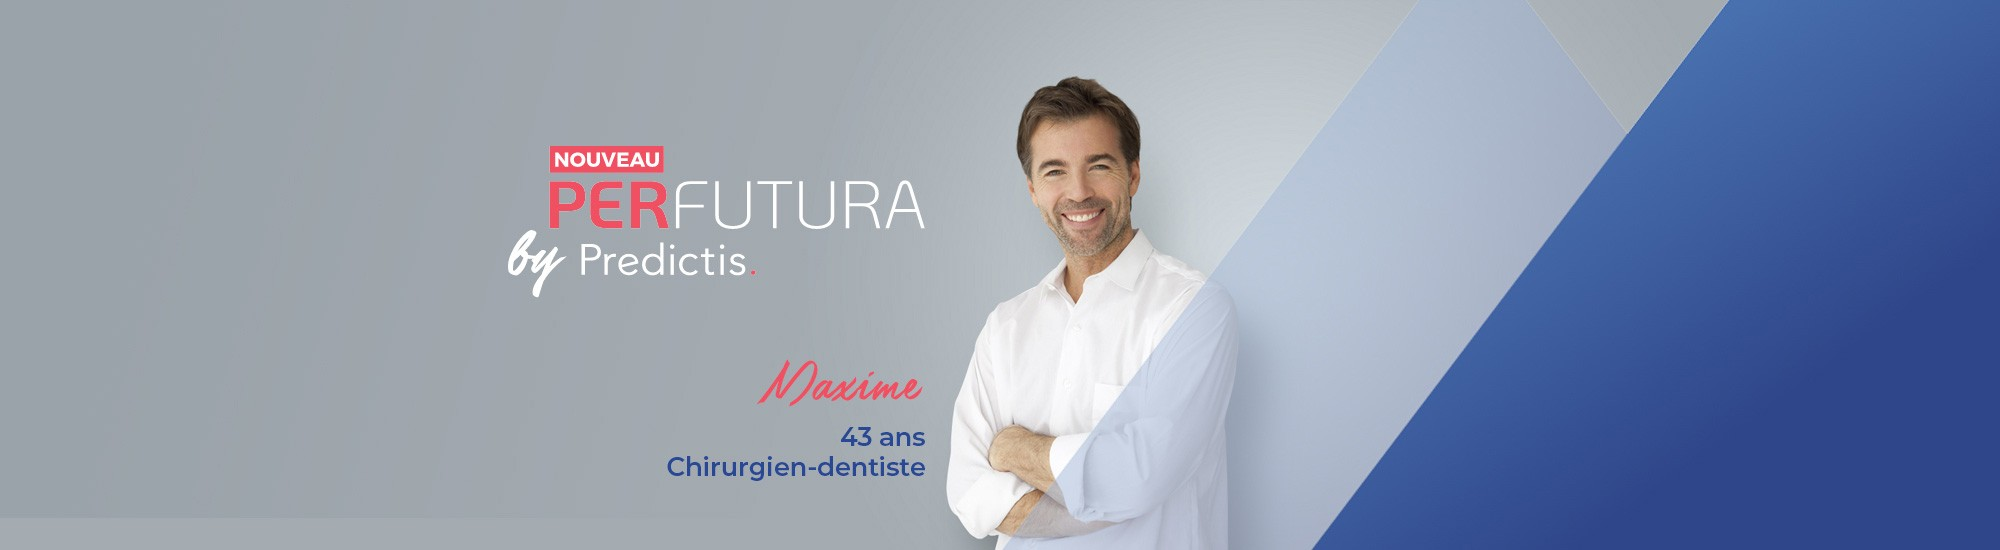 Maxime, 43 ans, Chirurgien-dentiste